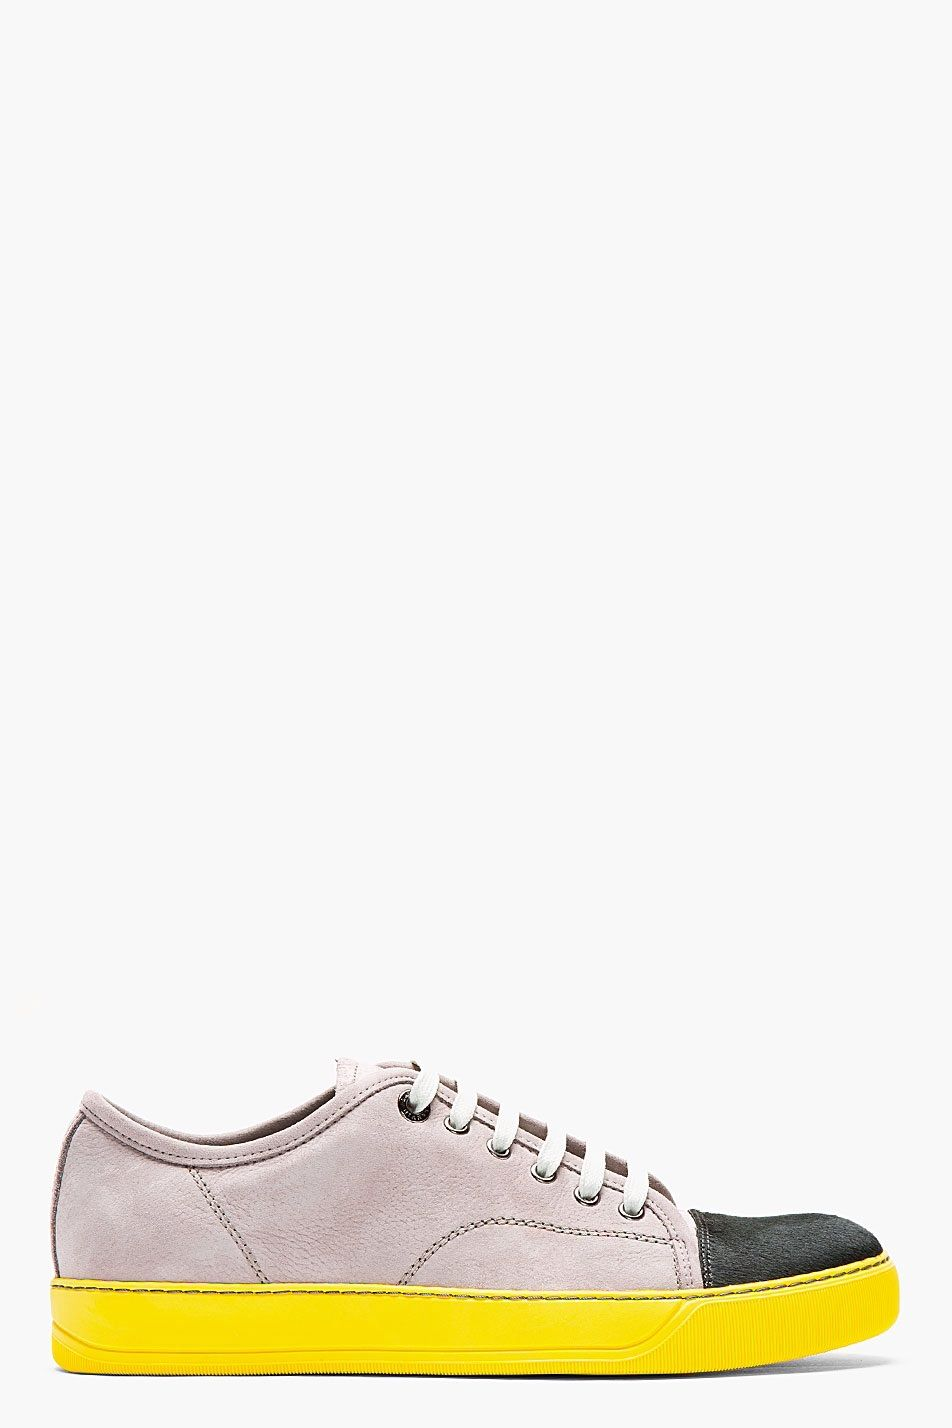 Lanvin Grey Leather Calfhair Tennis Sneakers for men Find this Pin and